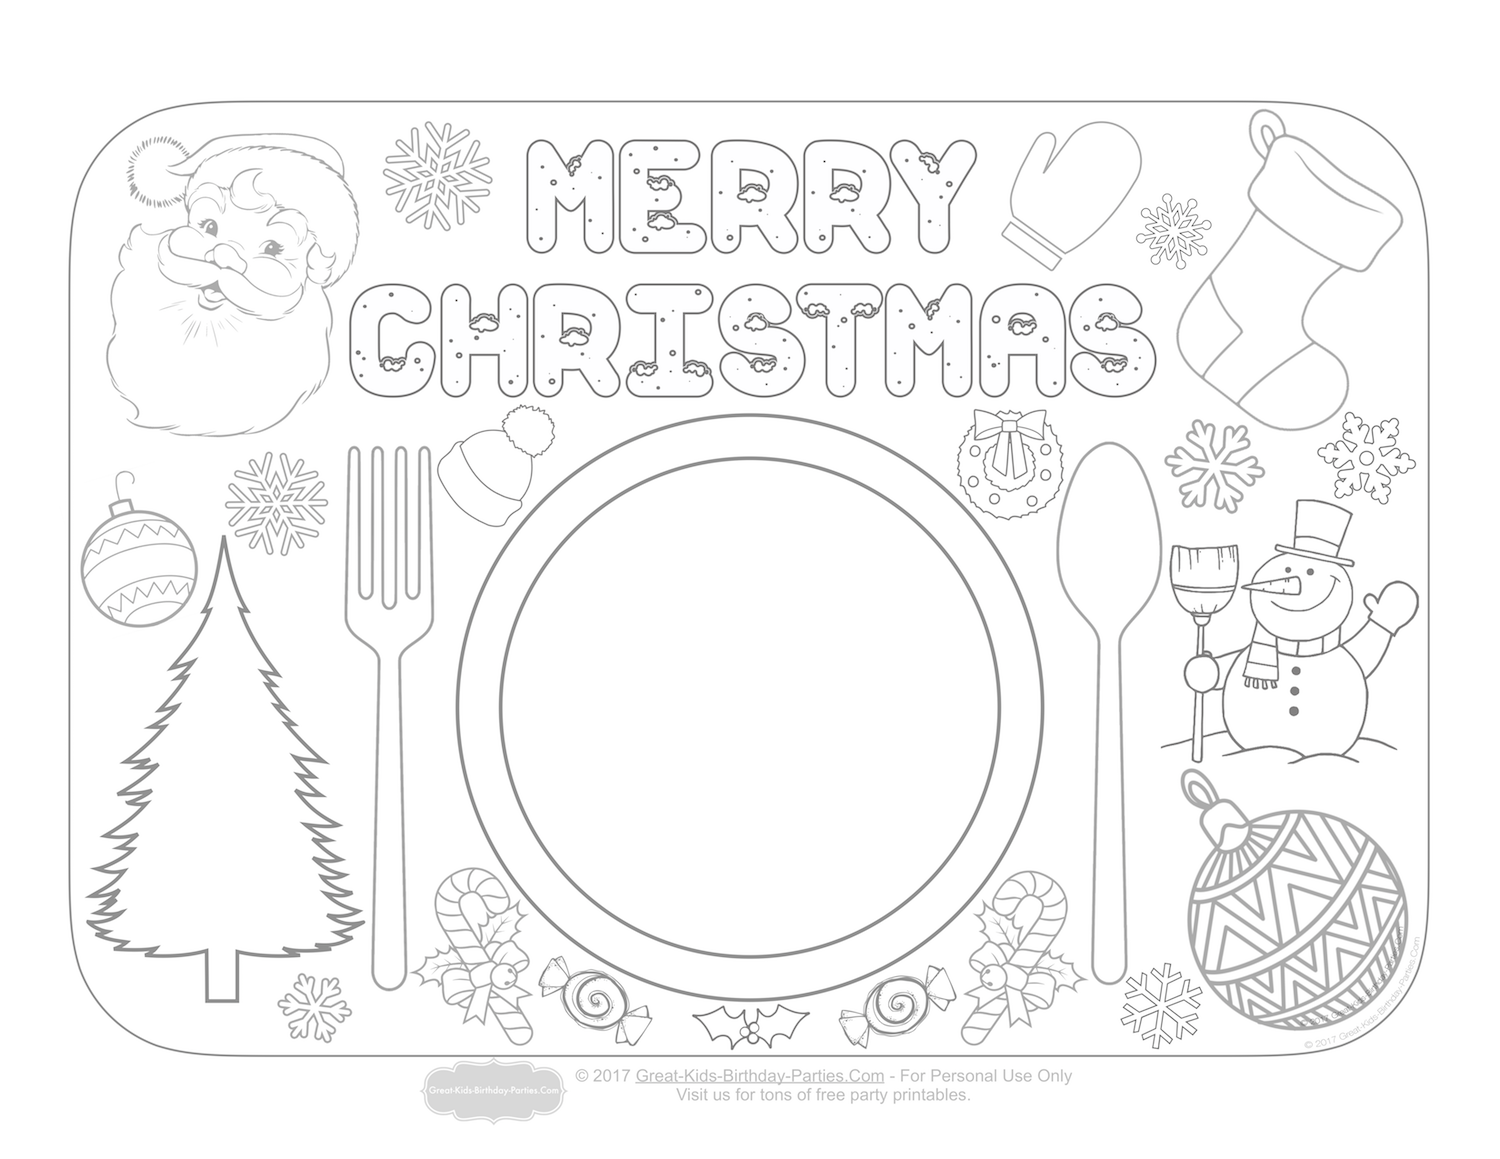 Merry Christmas Teacher Coloring Pages With